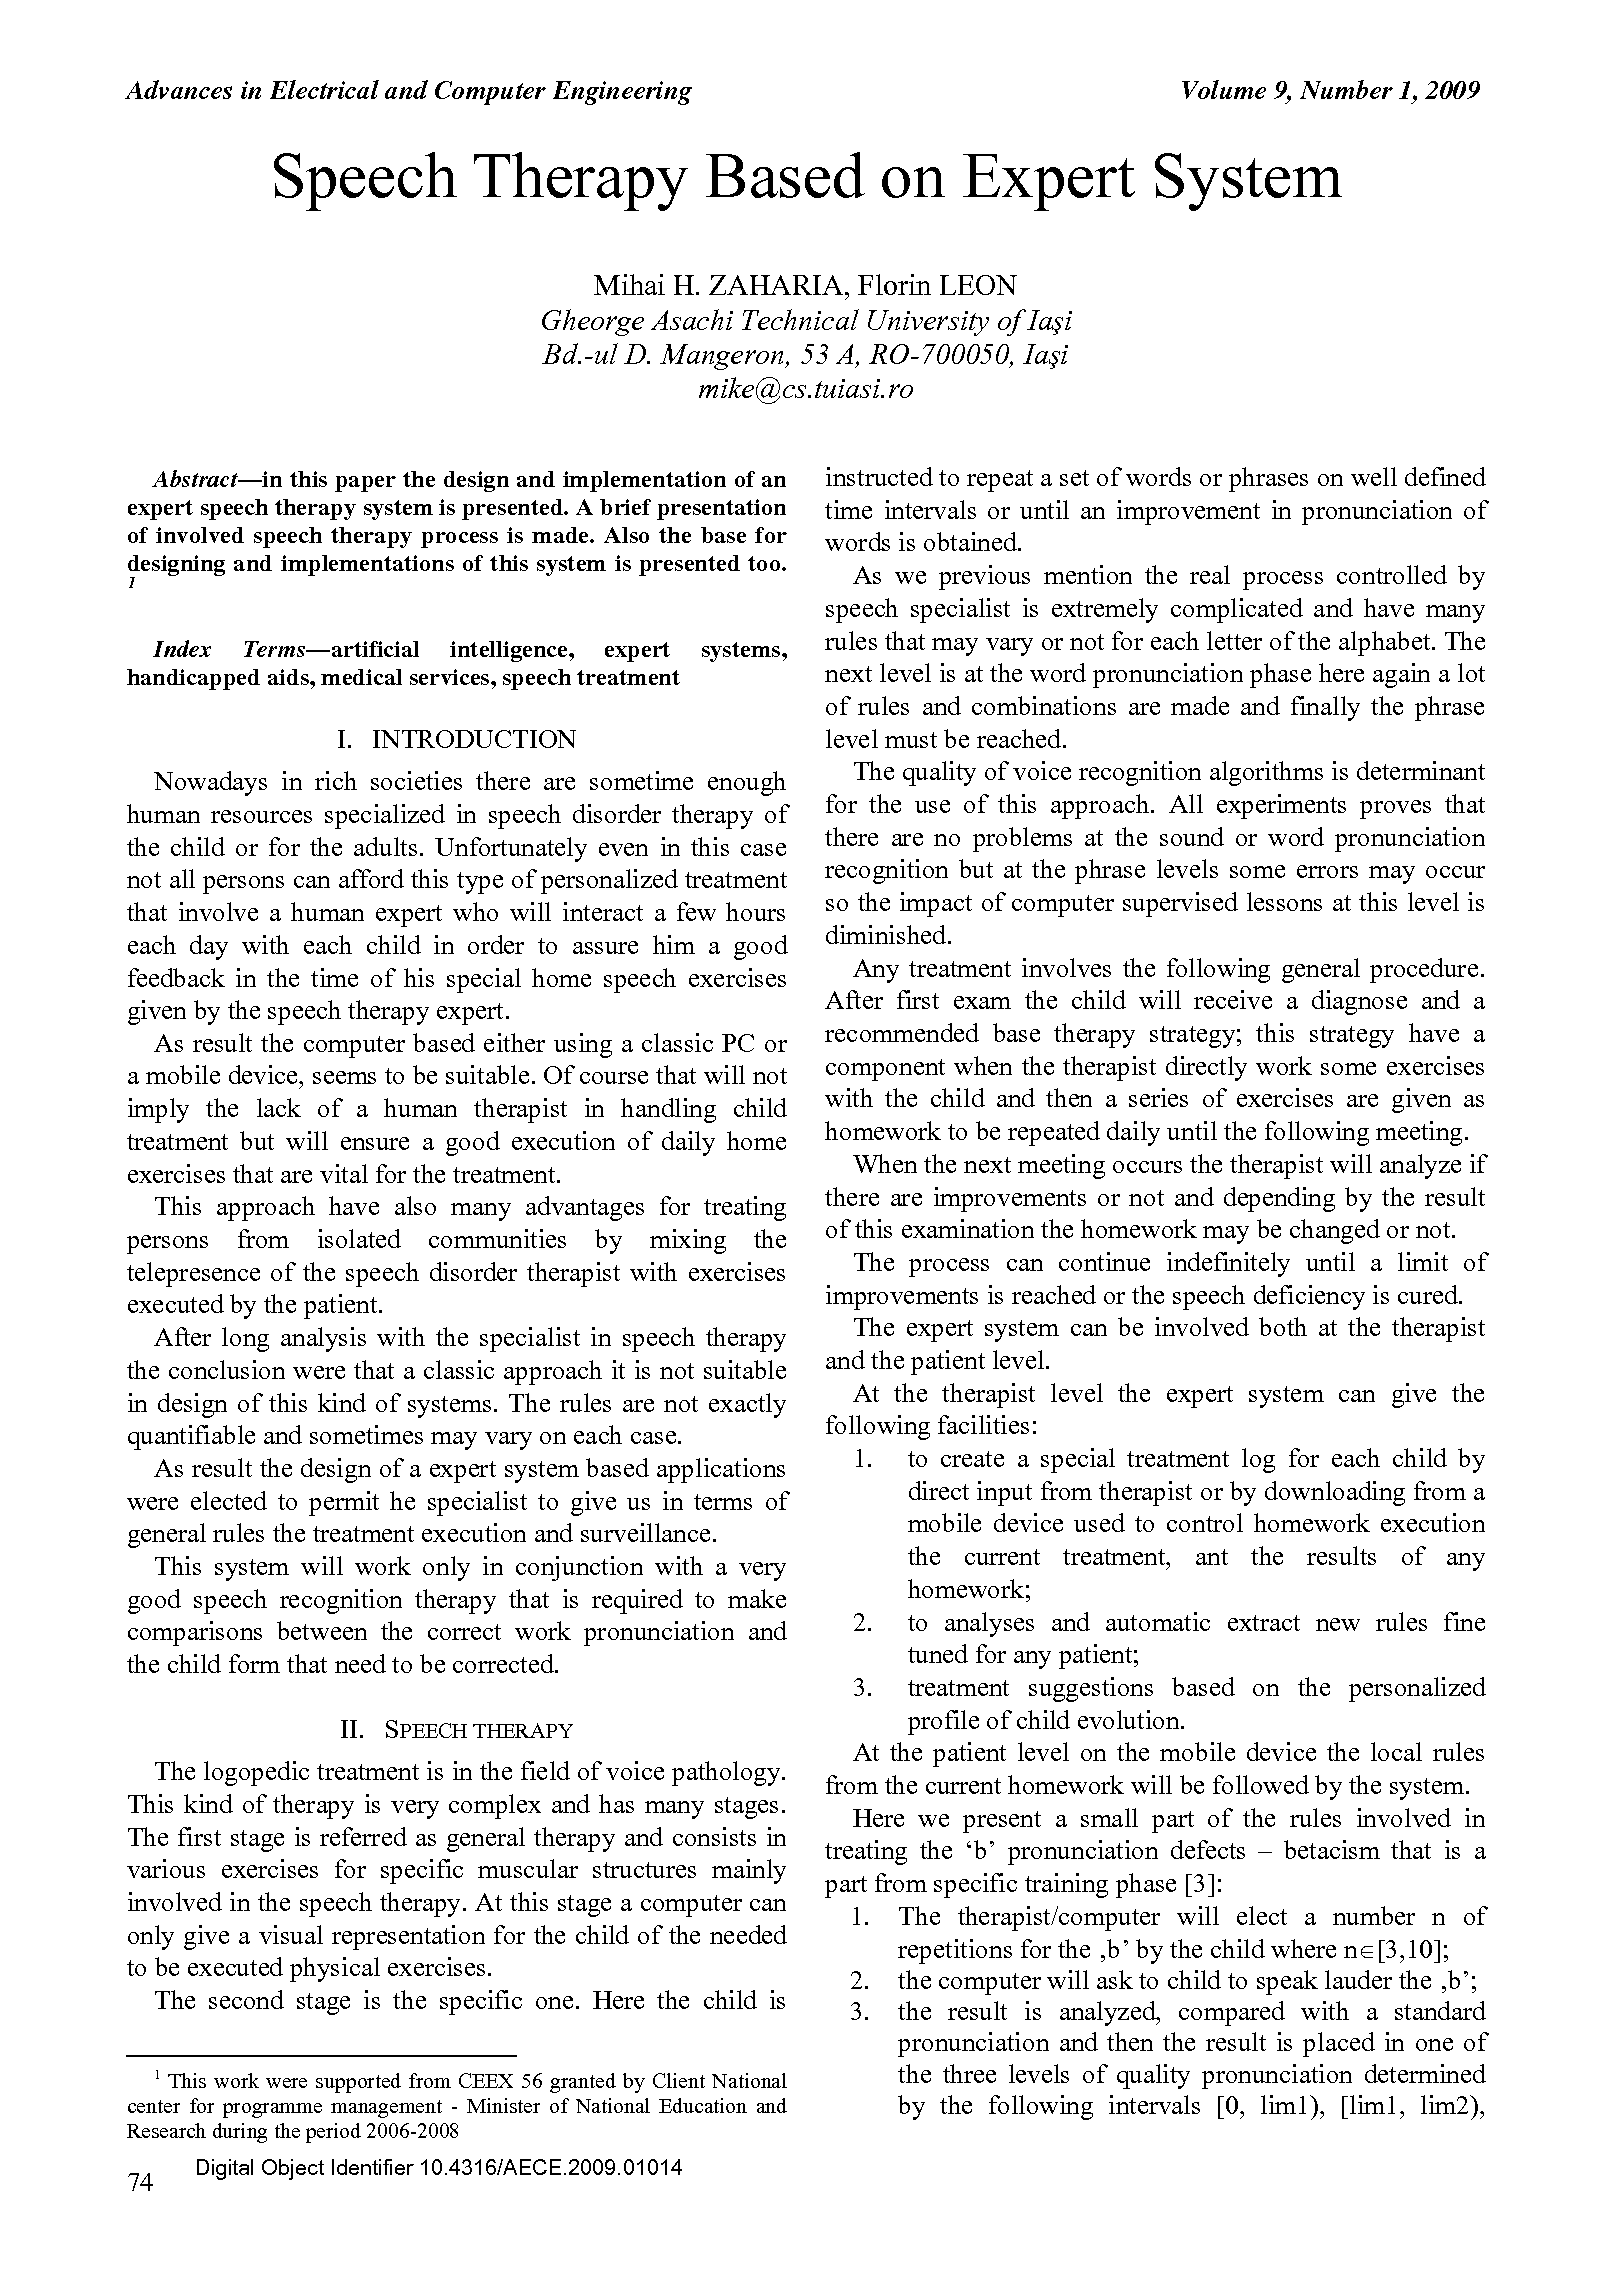 PDF Quickview for paper with DOI:10.4316/AECE.2009.01014